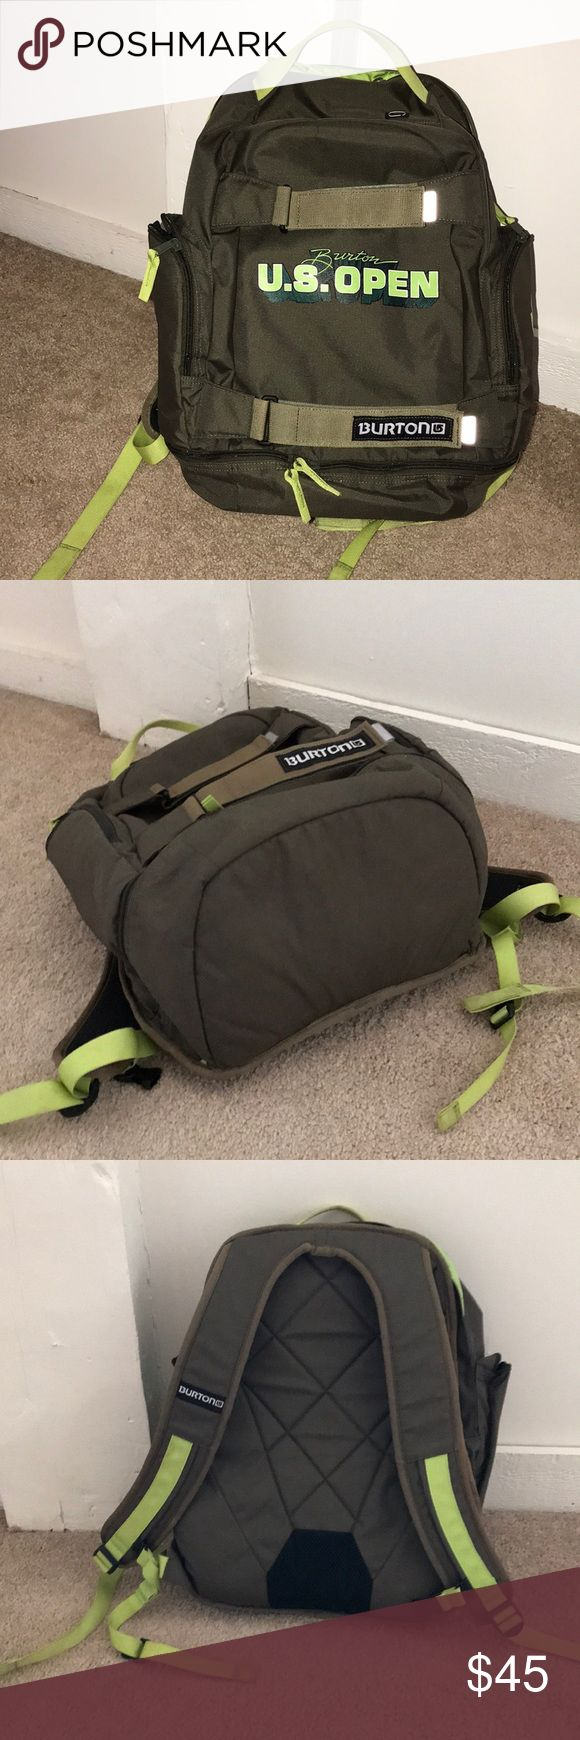 Burton green backpack Very good condition Burton Bags Backpacks